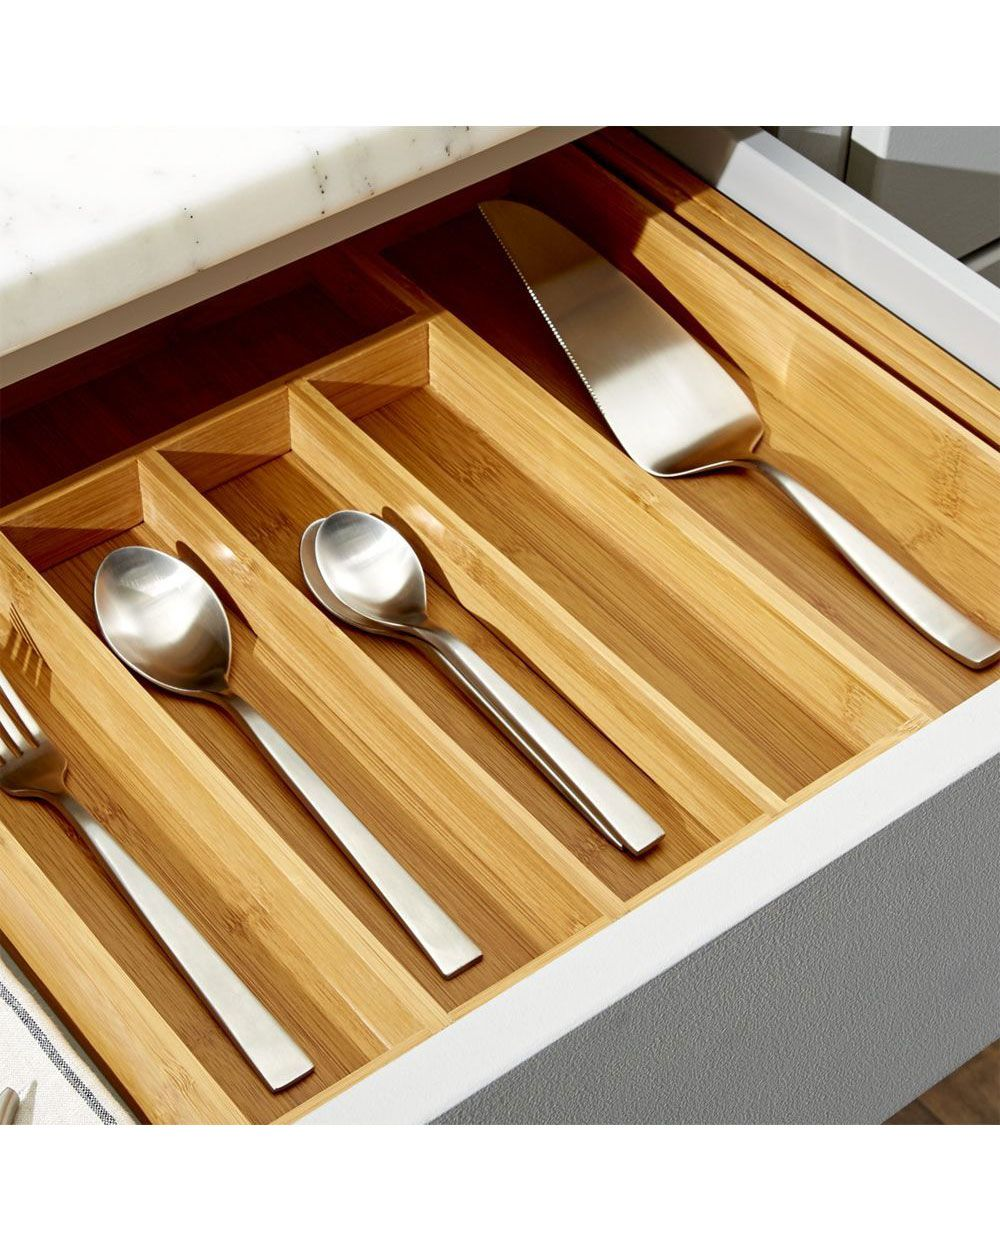 11 Best Drawer Organizers For Every Room In Your House Bamboo Flatware Diy Kitchen New Kitchen